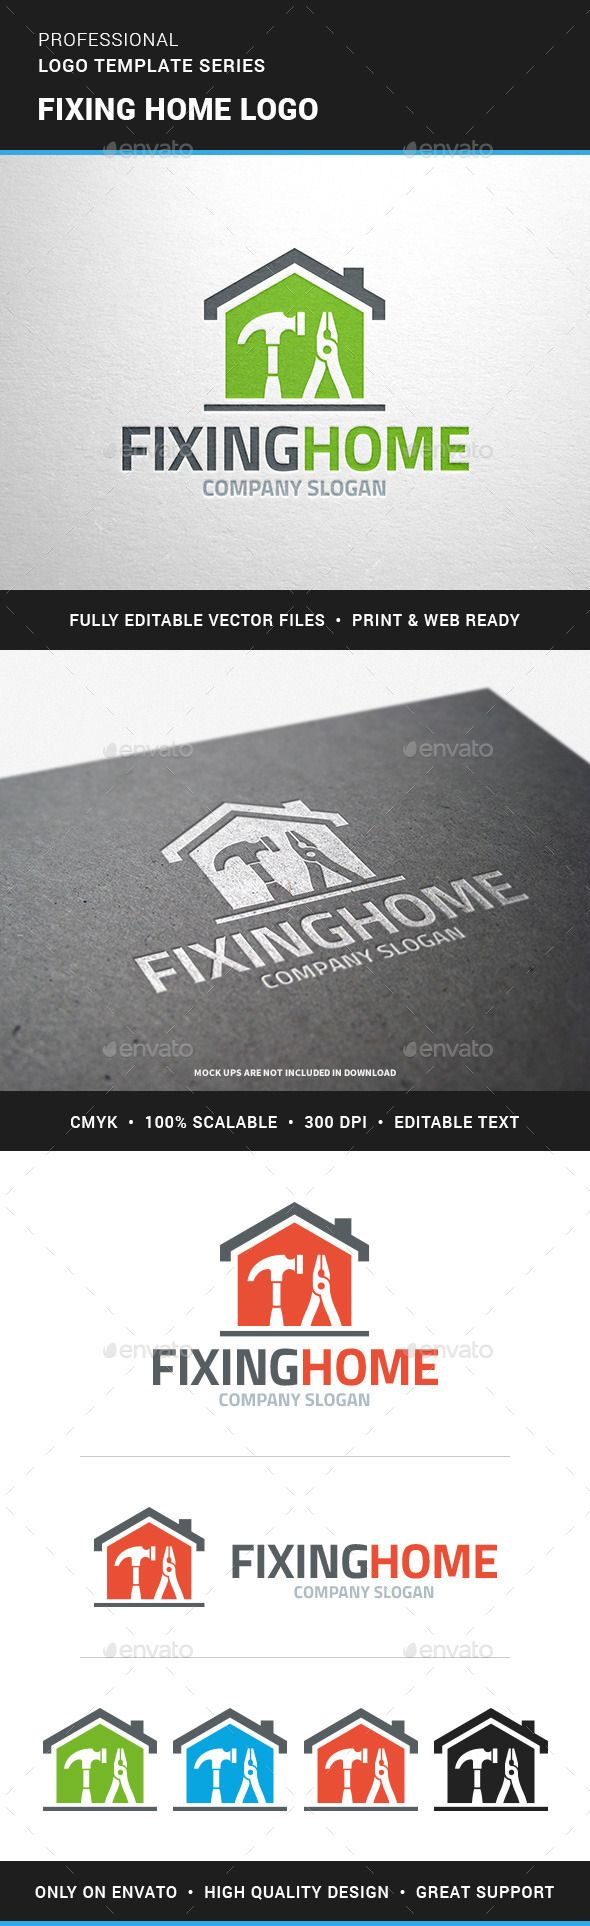 Home remodeling logo remodeling logo clipart - Fixing Home Logo Template